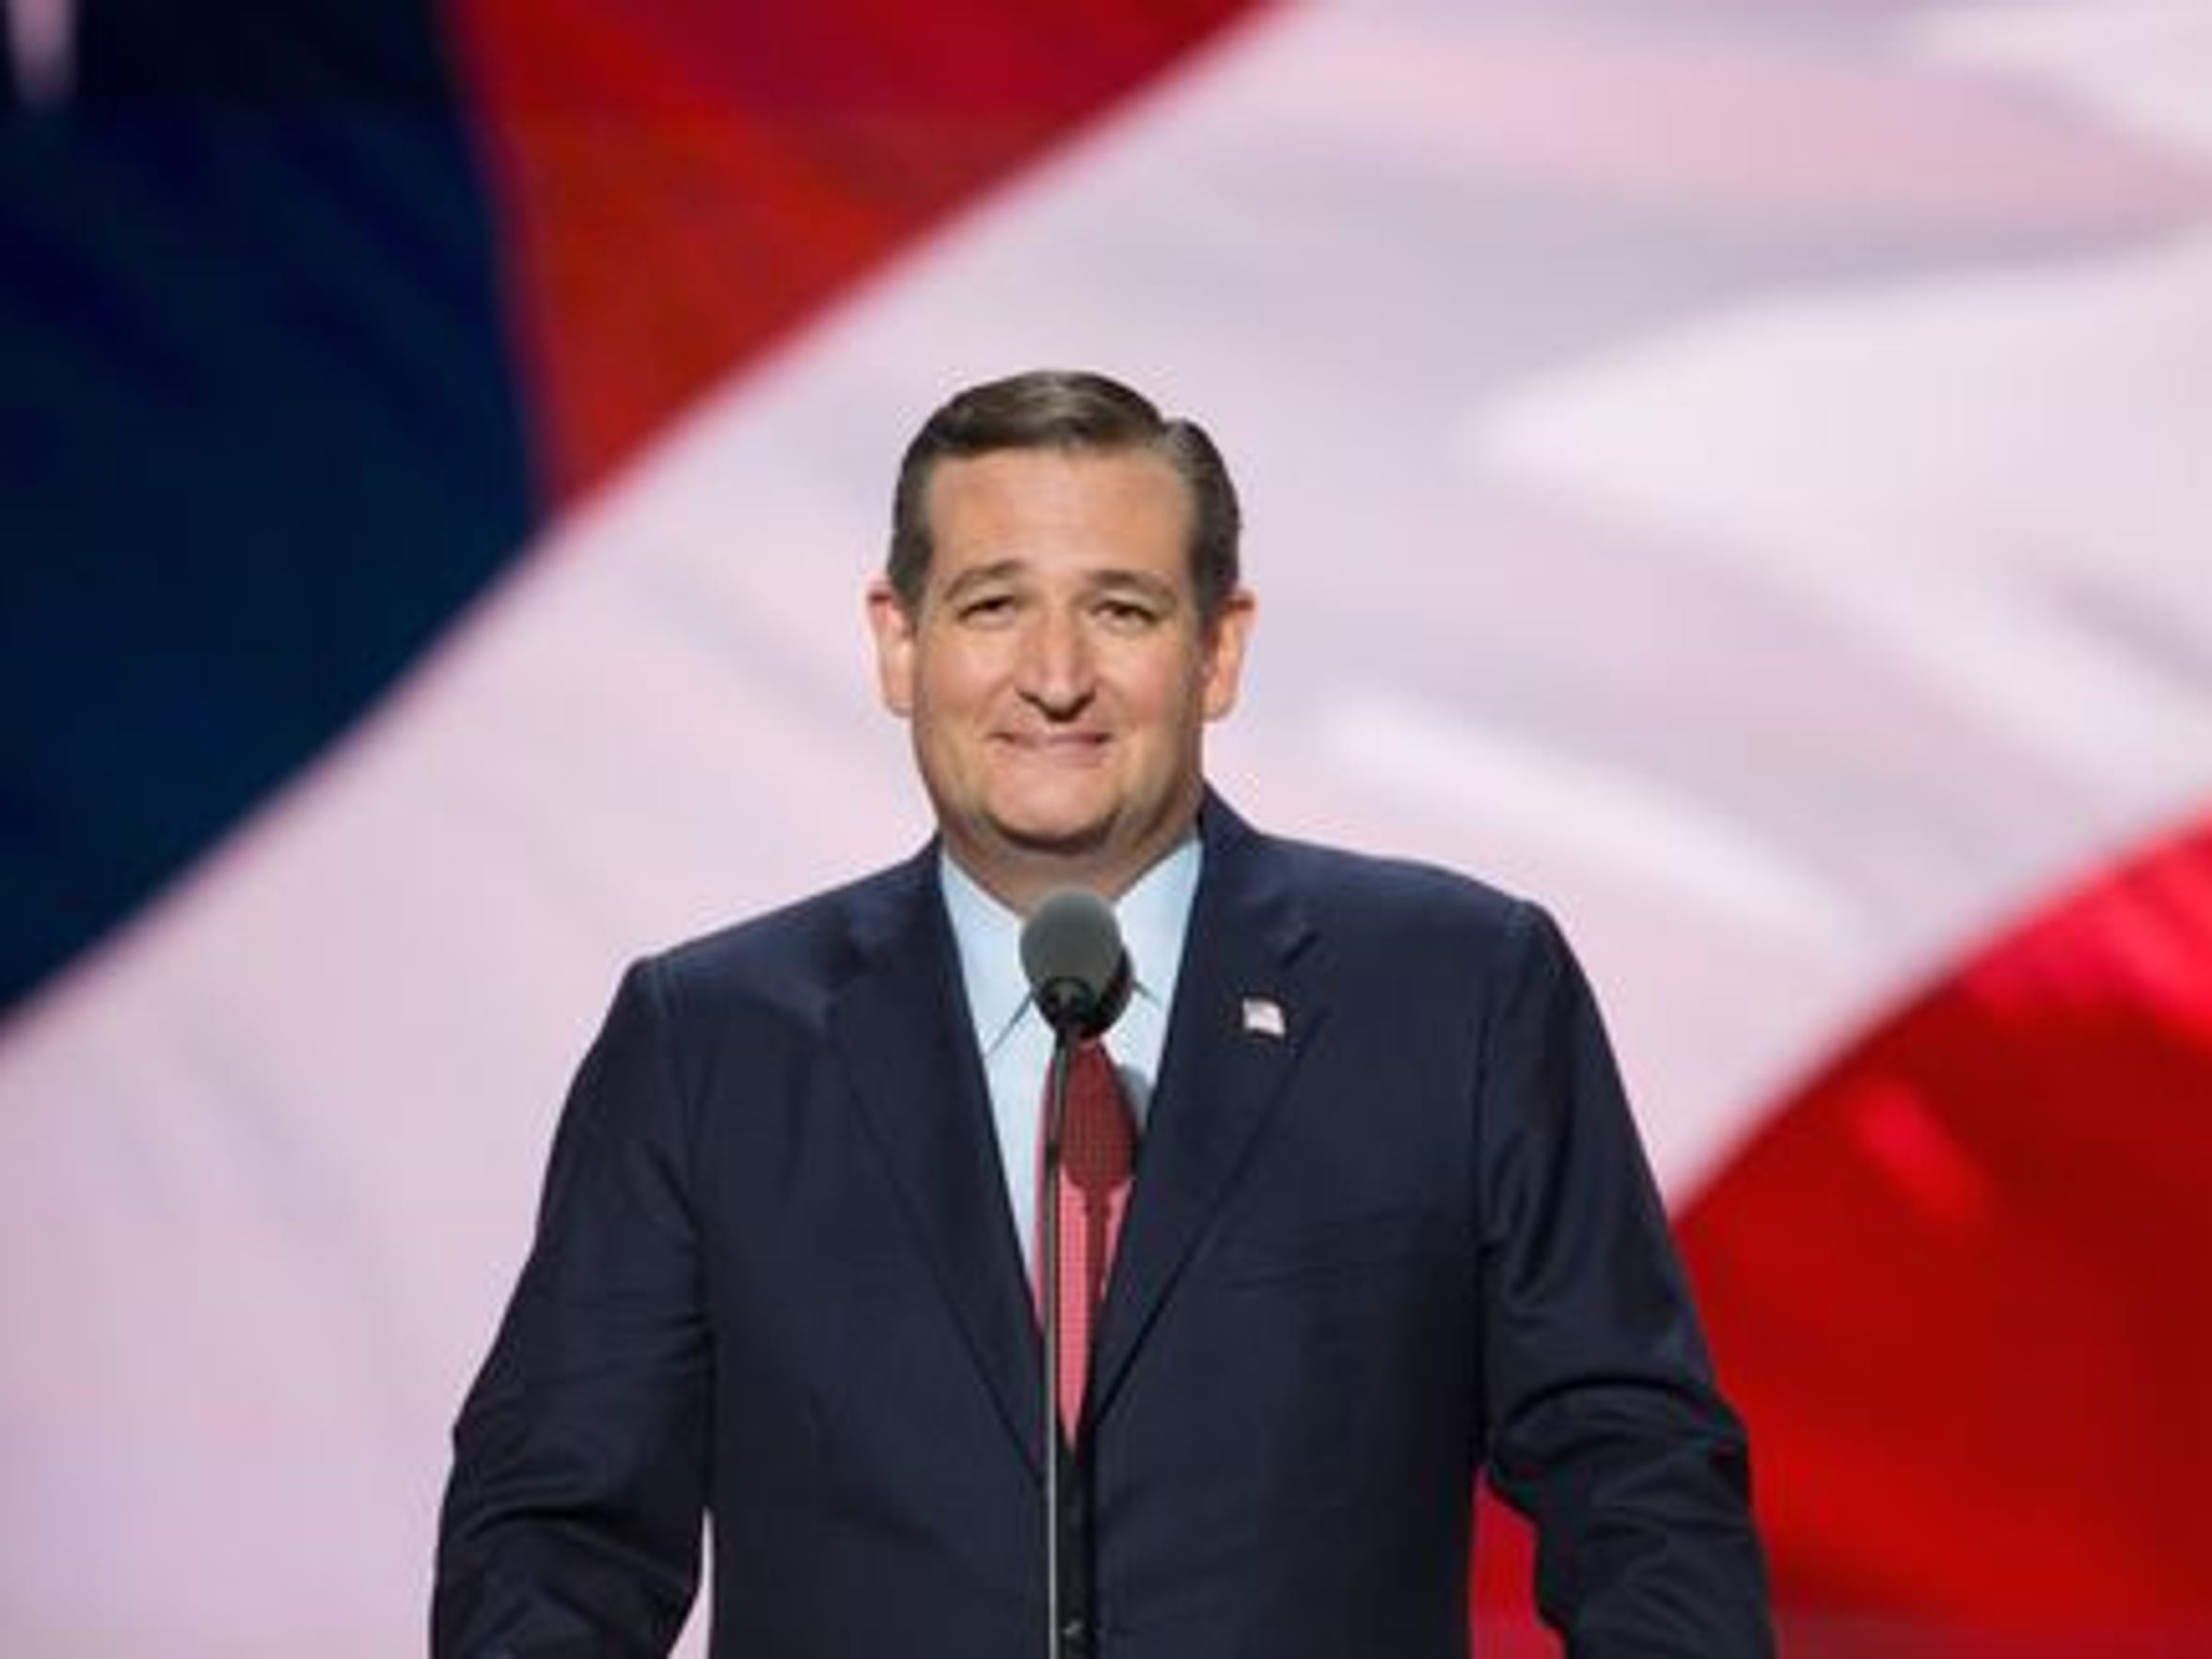 Ted Cruz speaks on the third day of the Republican